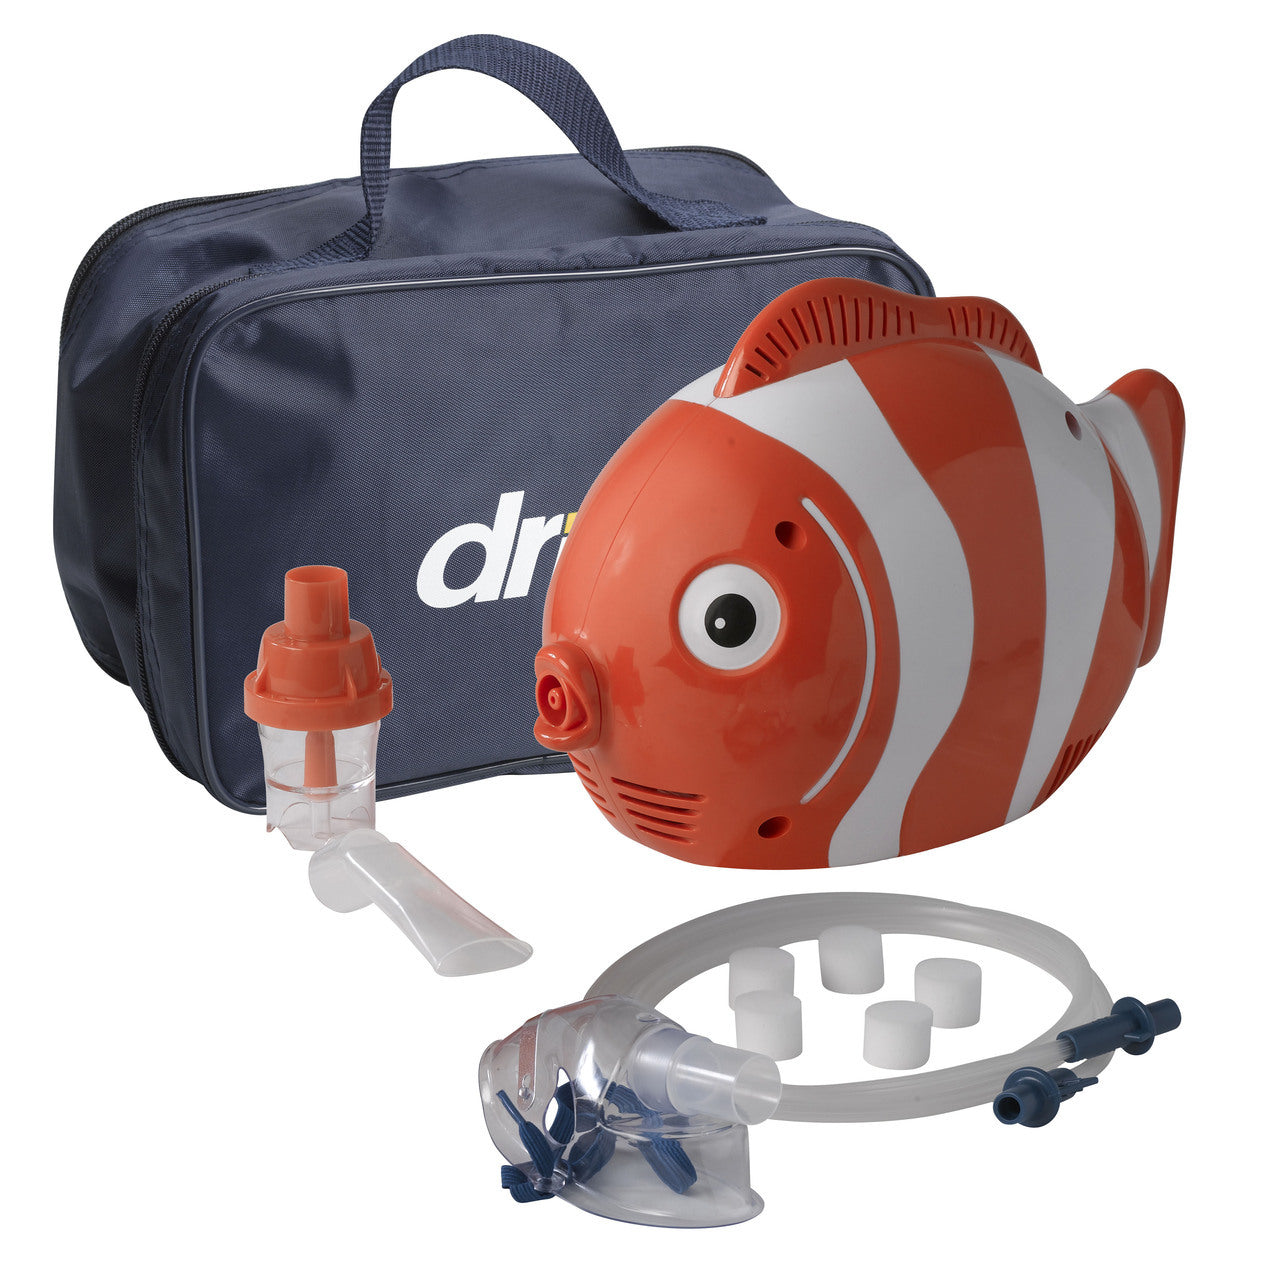 Clown Fish Pediatric Compressor Nebulizer-With Disposable Nebulizer